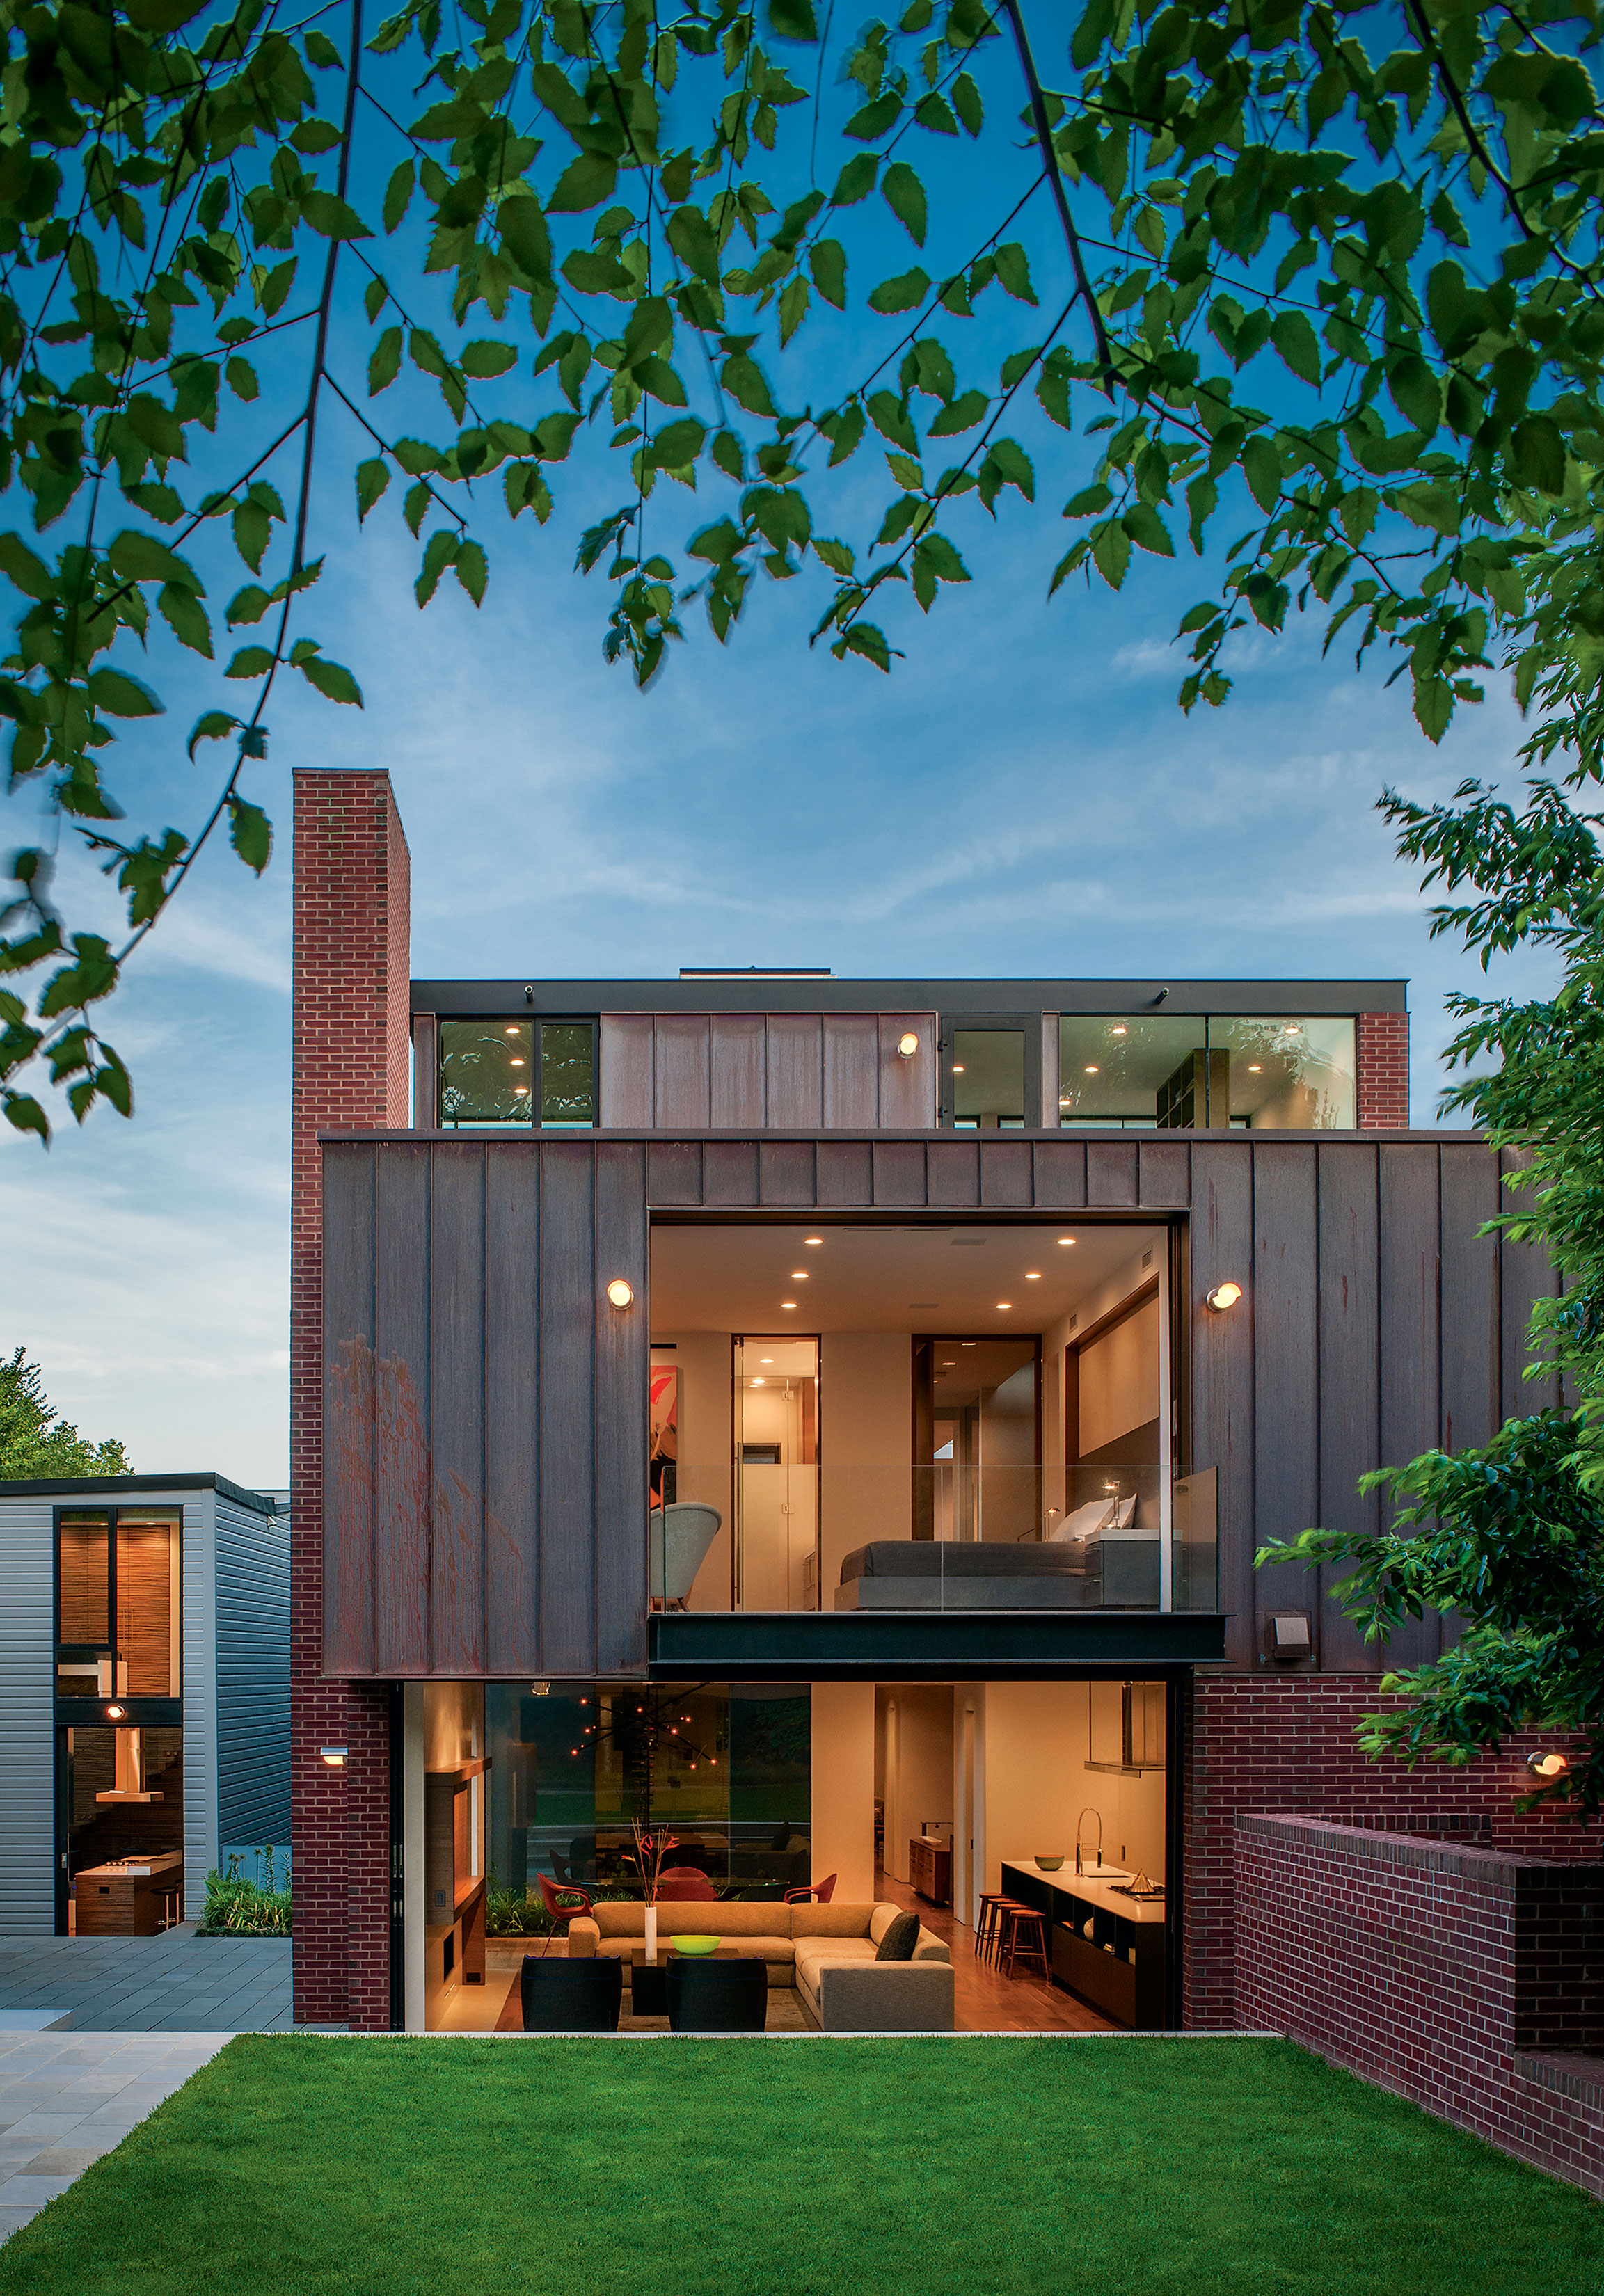 Photograph of Georgetown house by Maxwell MacKenzie Architectural Photographer.